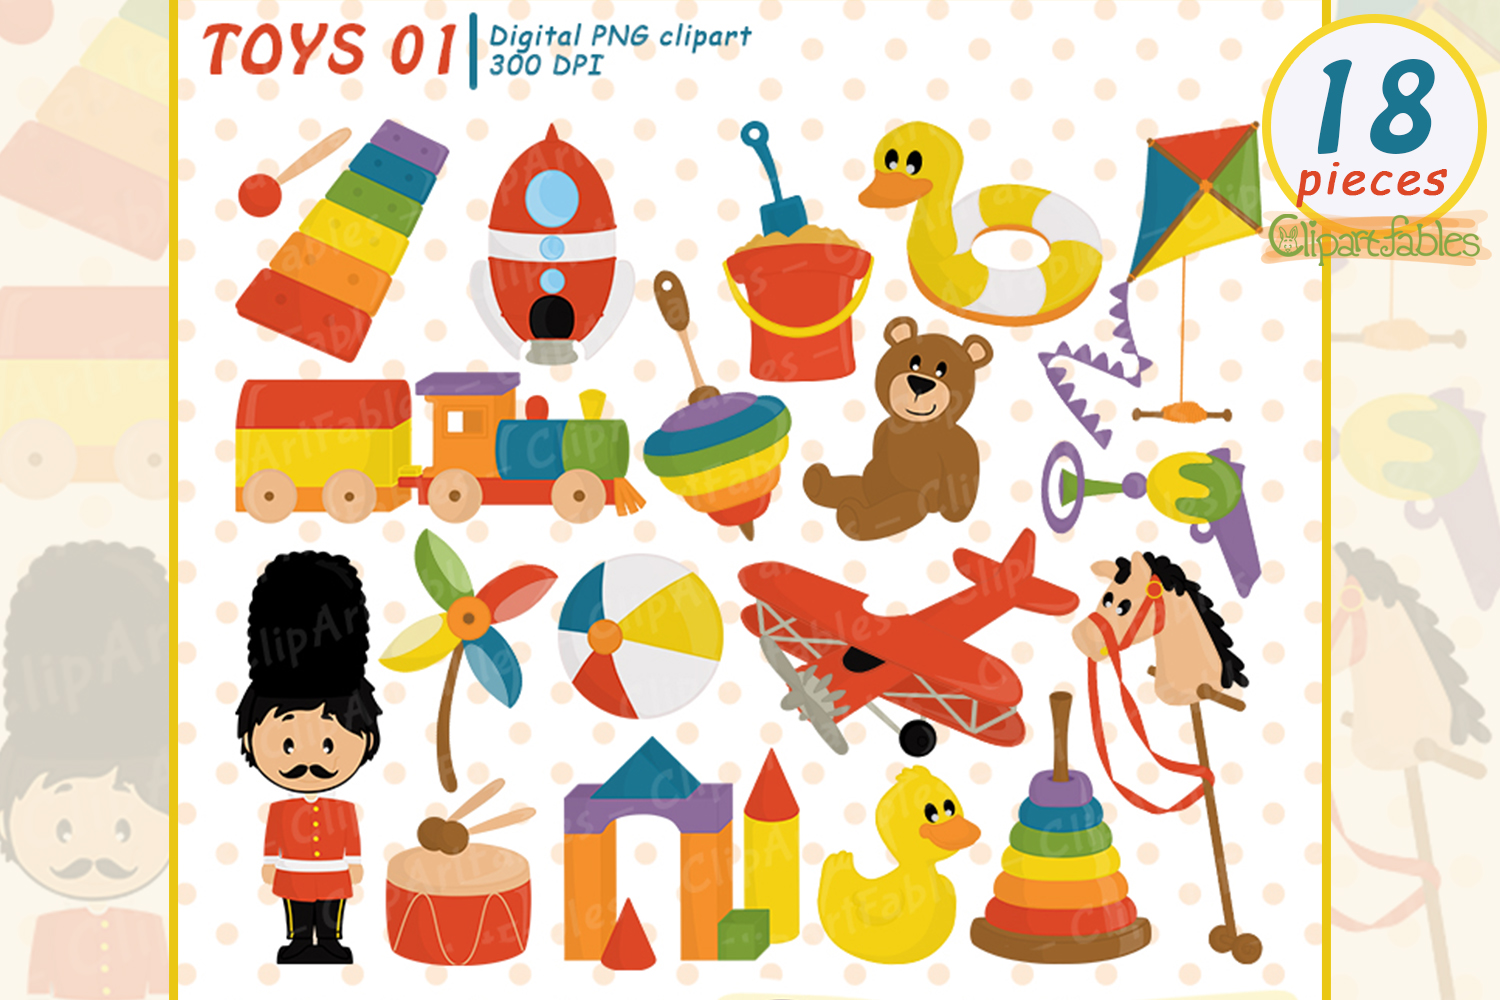 Cute kids toys clipart, wooden toys.